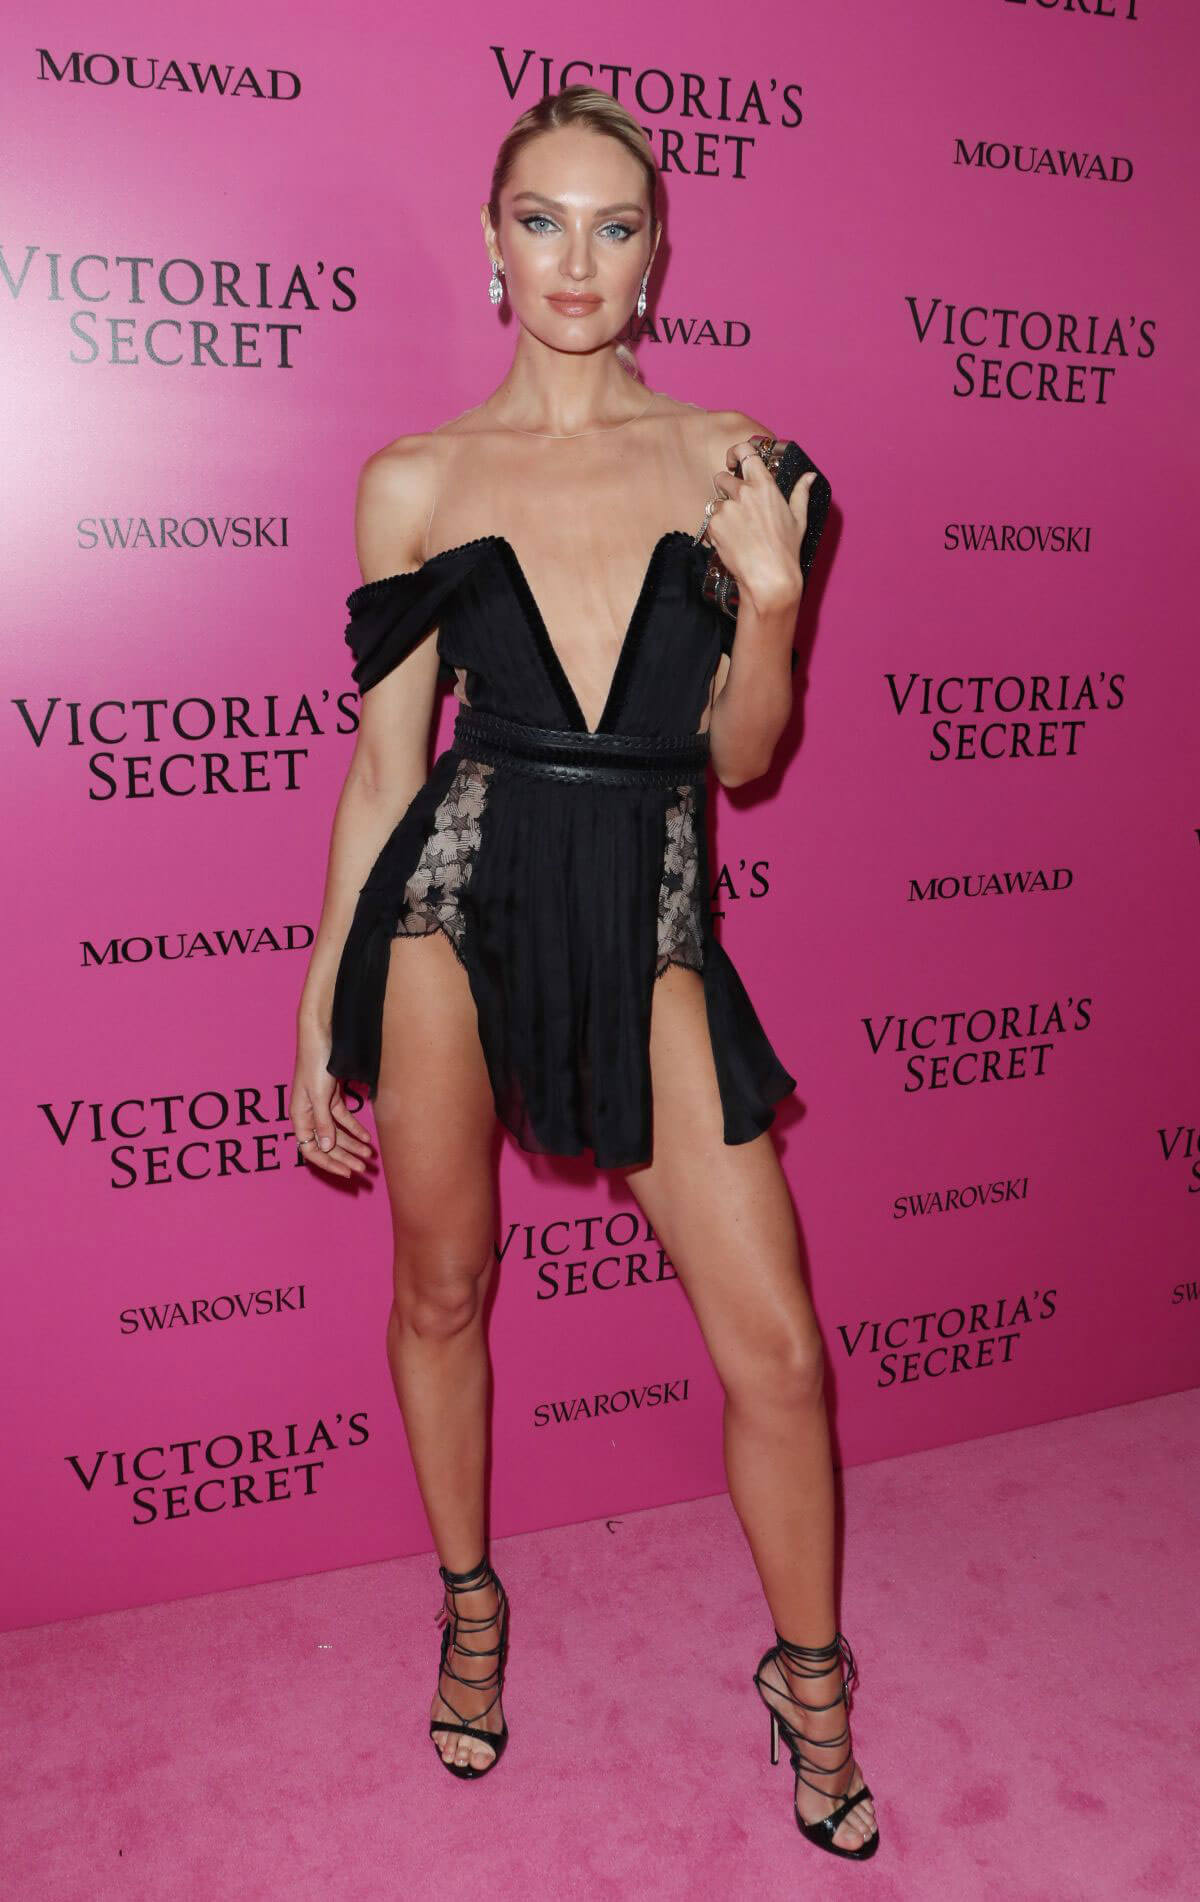 Candice Swanepoel Stills at 2017 Victoria's Secret Fashion Show After Party in Shanghai